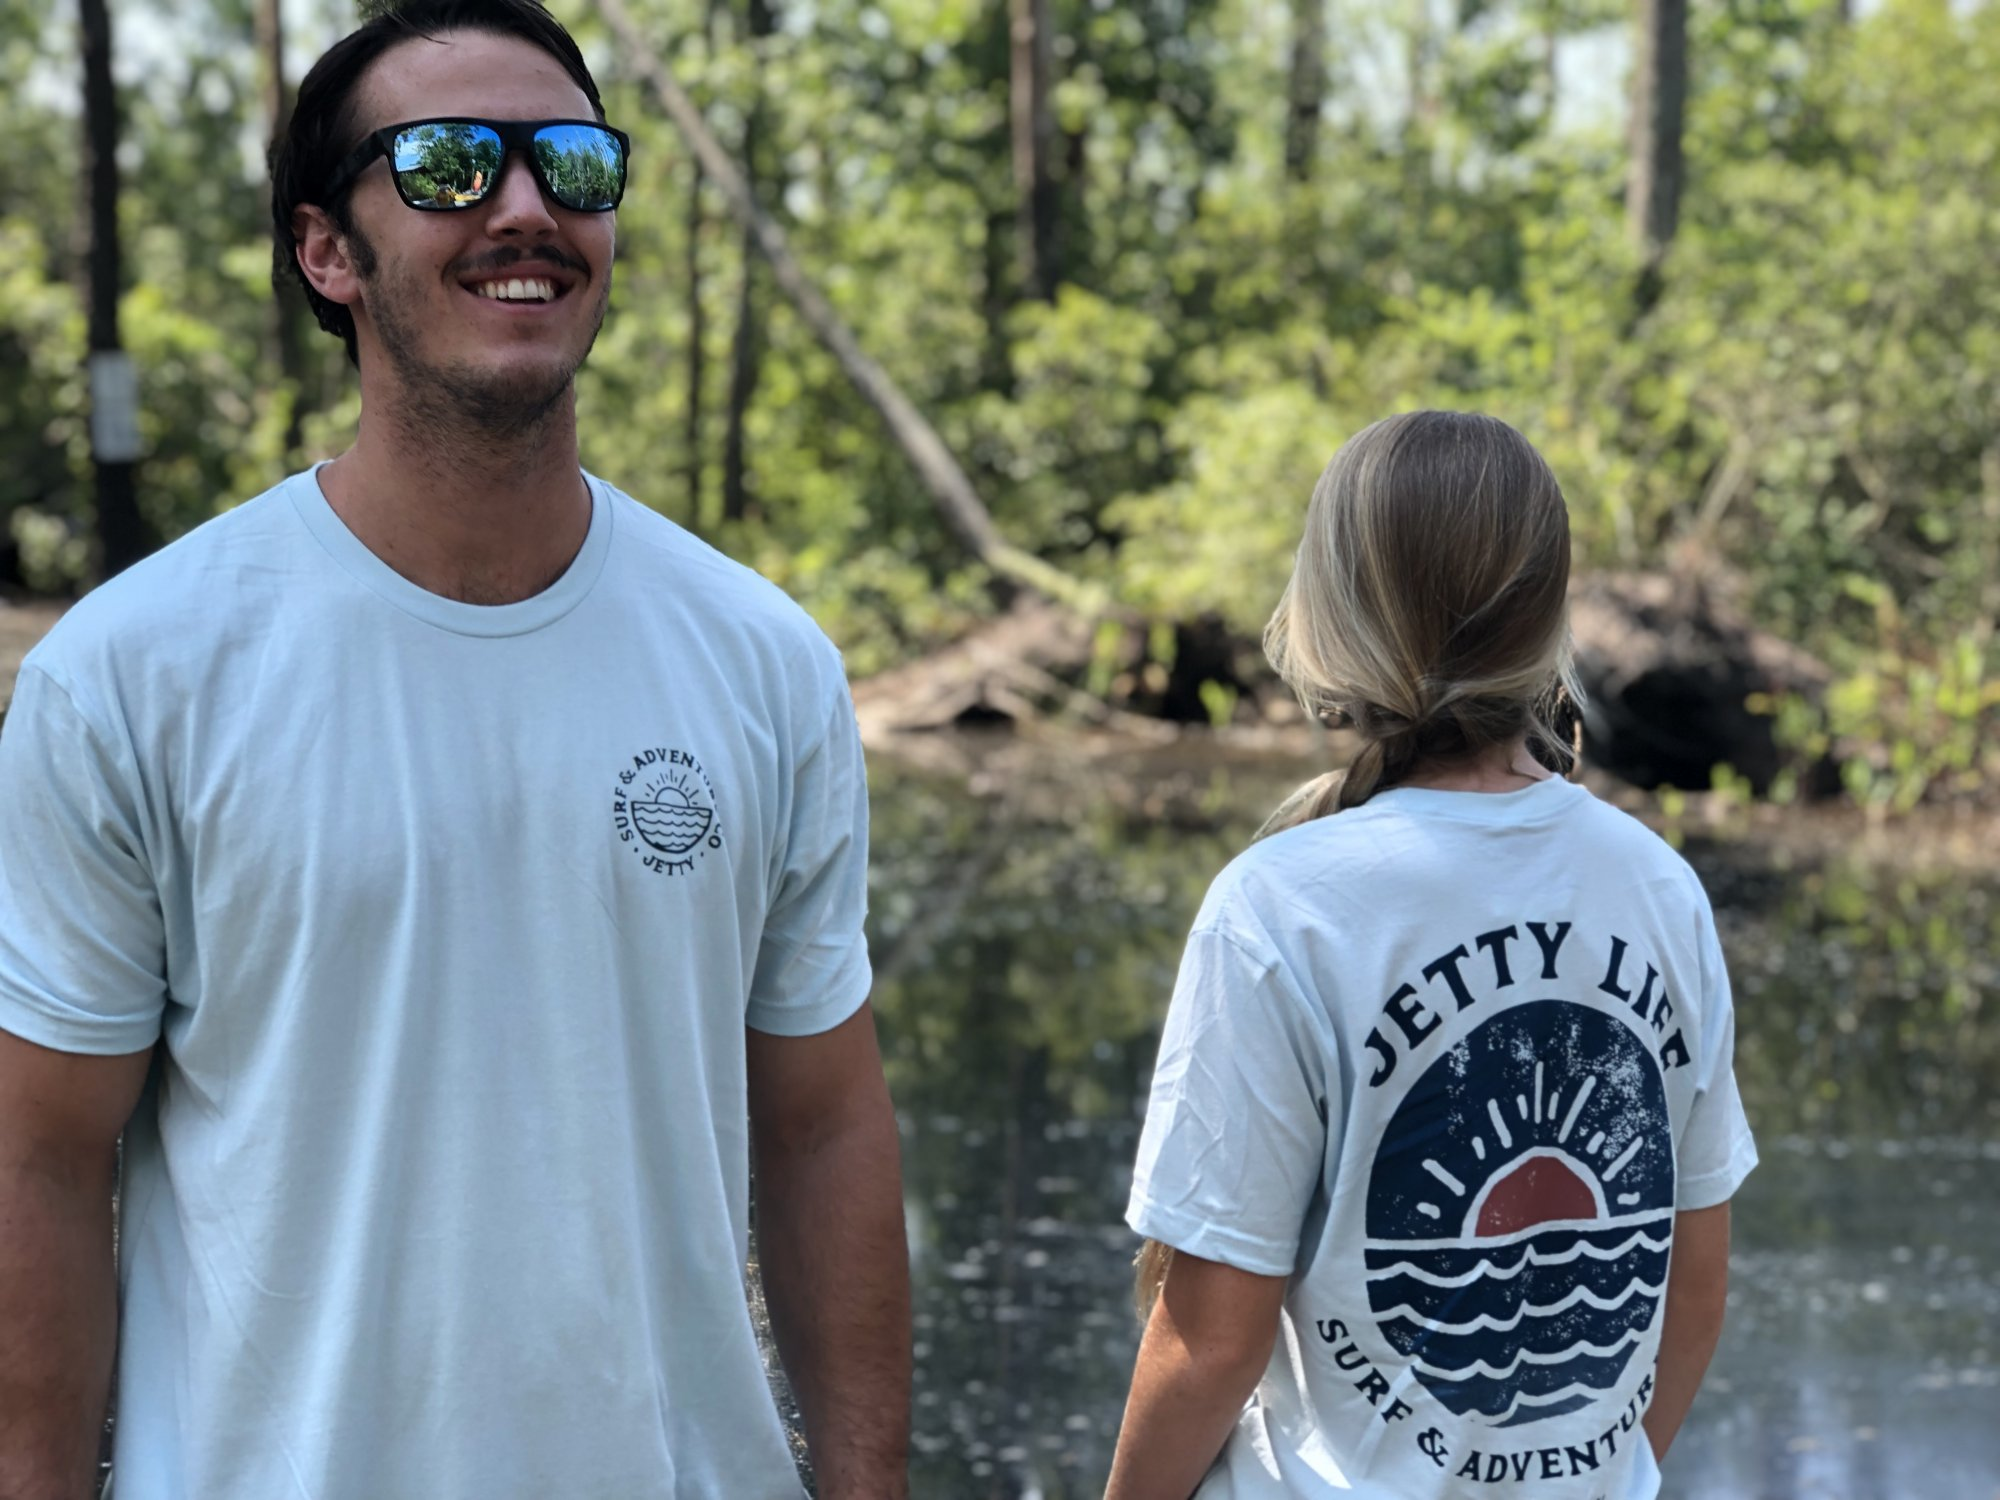 Jetty X Surf and Adventure S/S